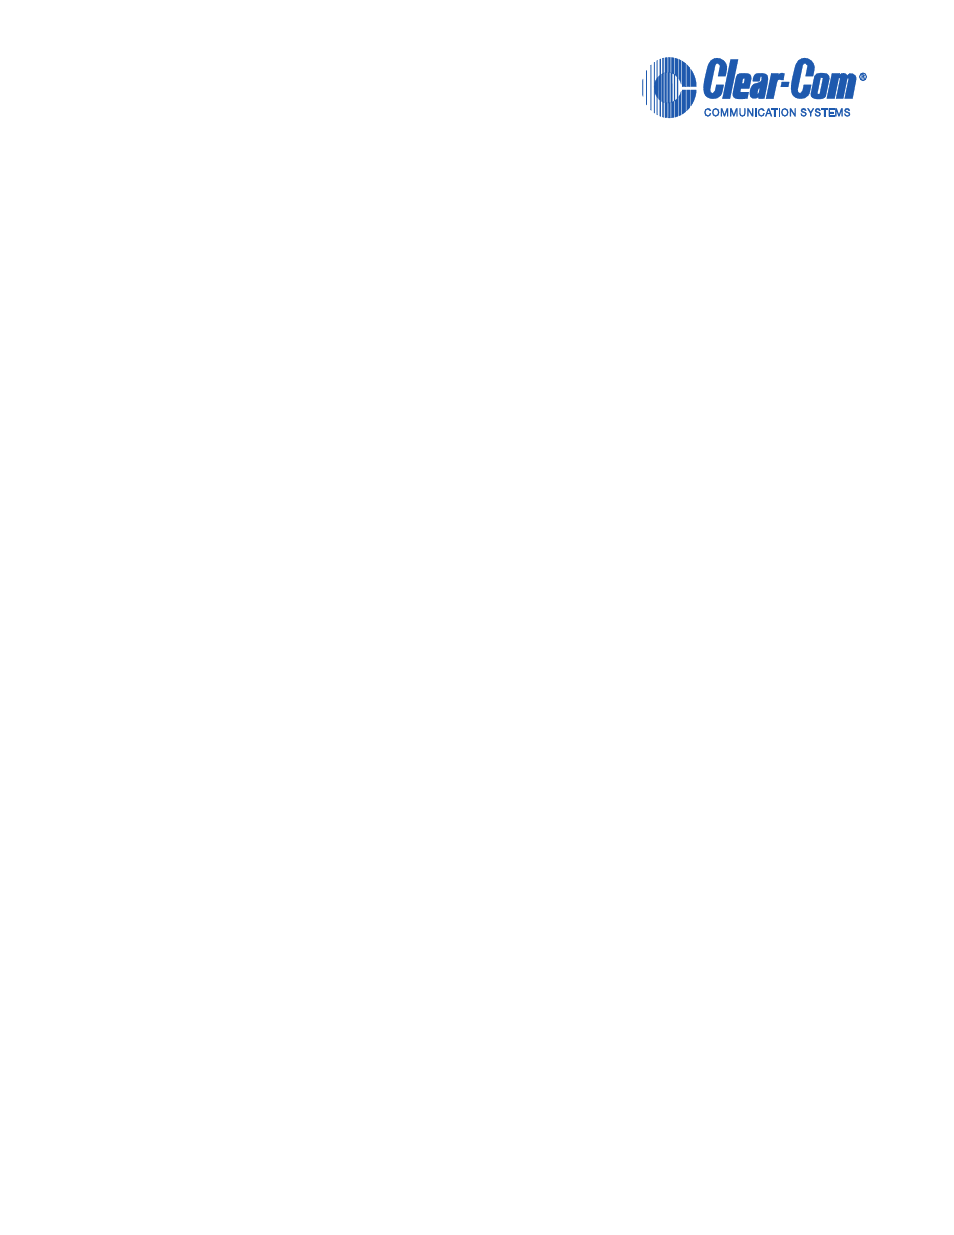 Clearcom Wiring Diagram Library Honda C72 And C77 Motorcycle All About Clear Com Cci 22 User Manual 36 Pages